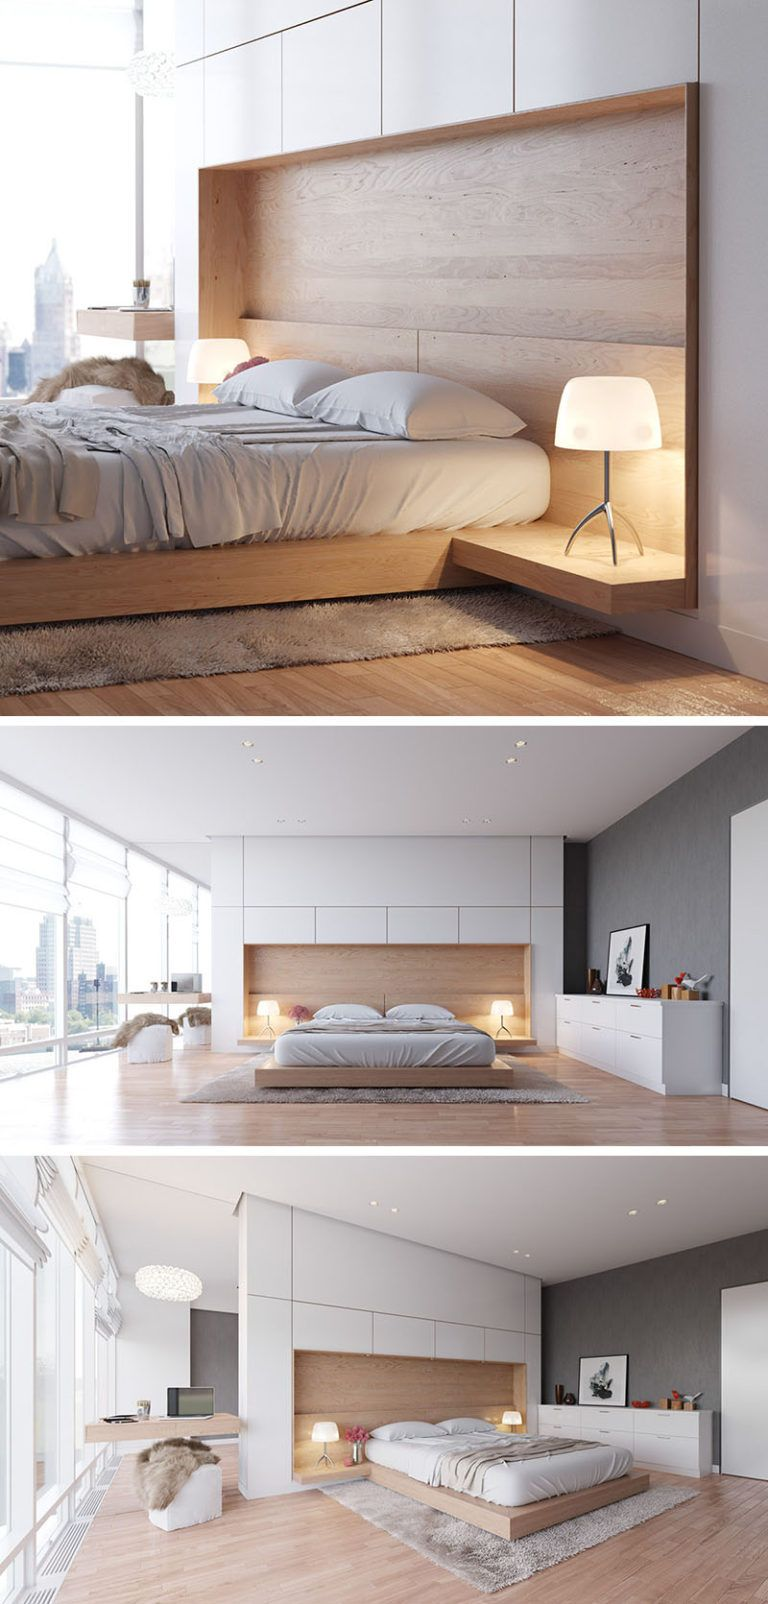 Bedroom Design Idea   Combine Your Bed And Side Table Into One     House      Bedroom Design Idea   Combine Your Bed